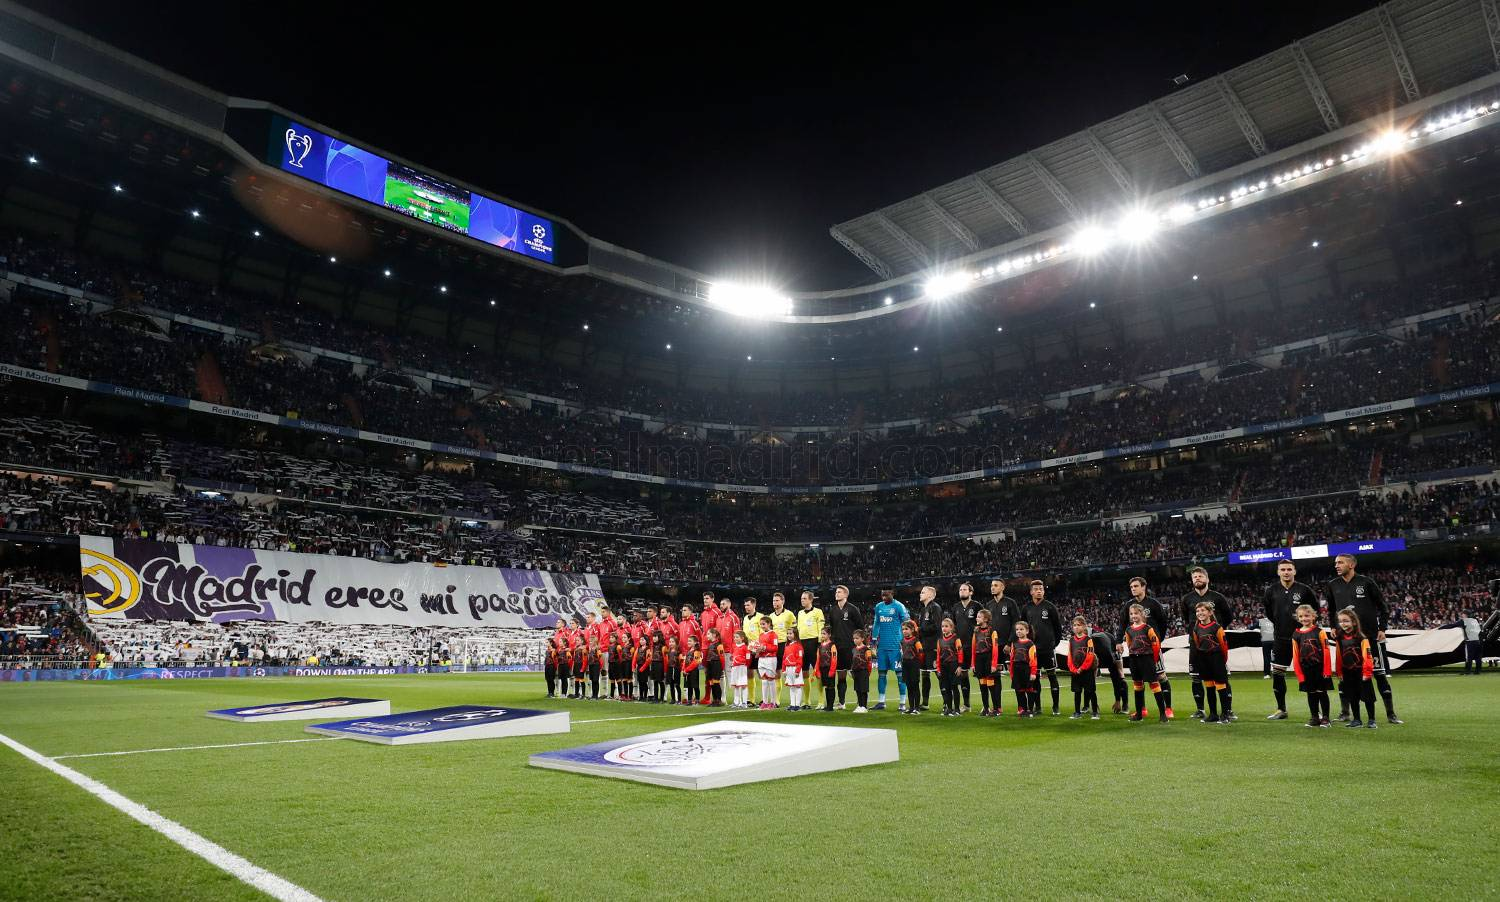 Real Madrid - Real Madrid - Ajax - 05-03-2019